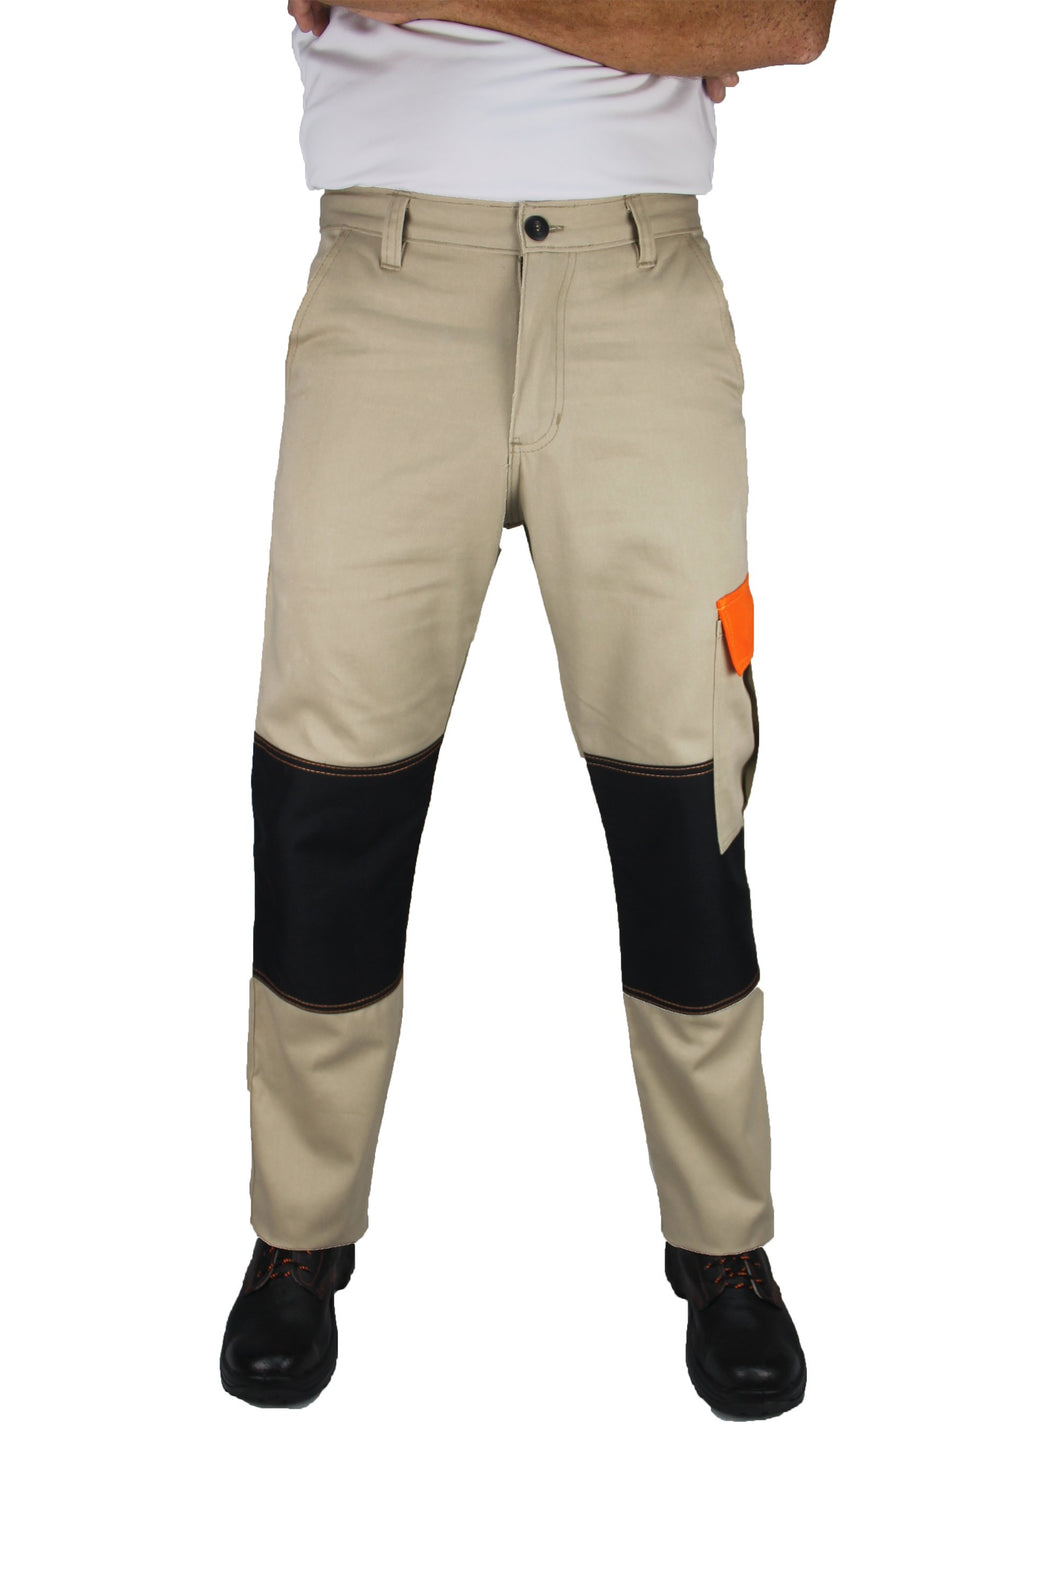 KP05 - Kolossus Original Fit 100% Cotton Utility Cargo Pant with Cordura Knee Reinforcement